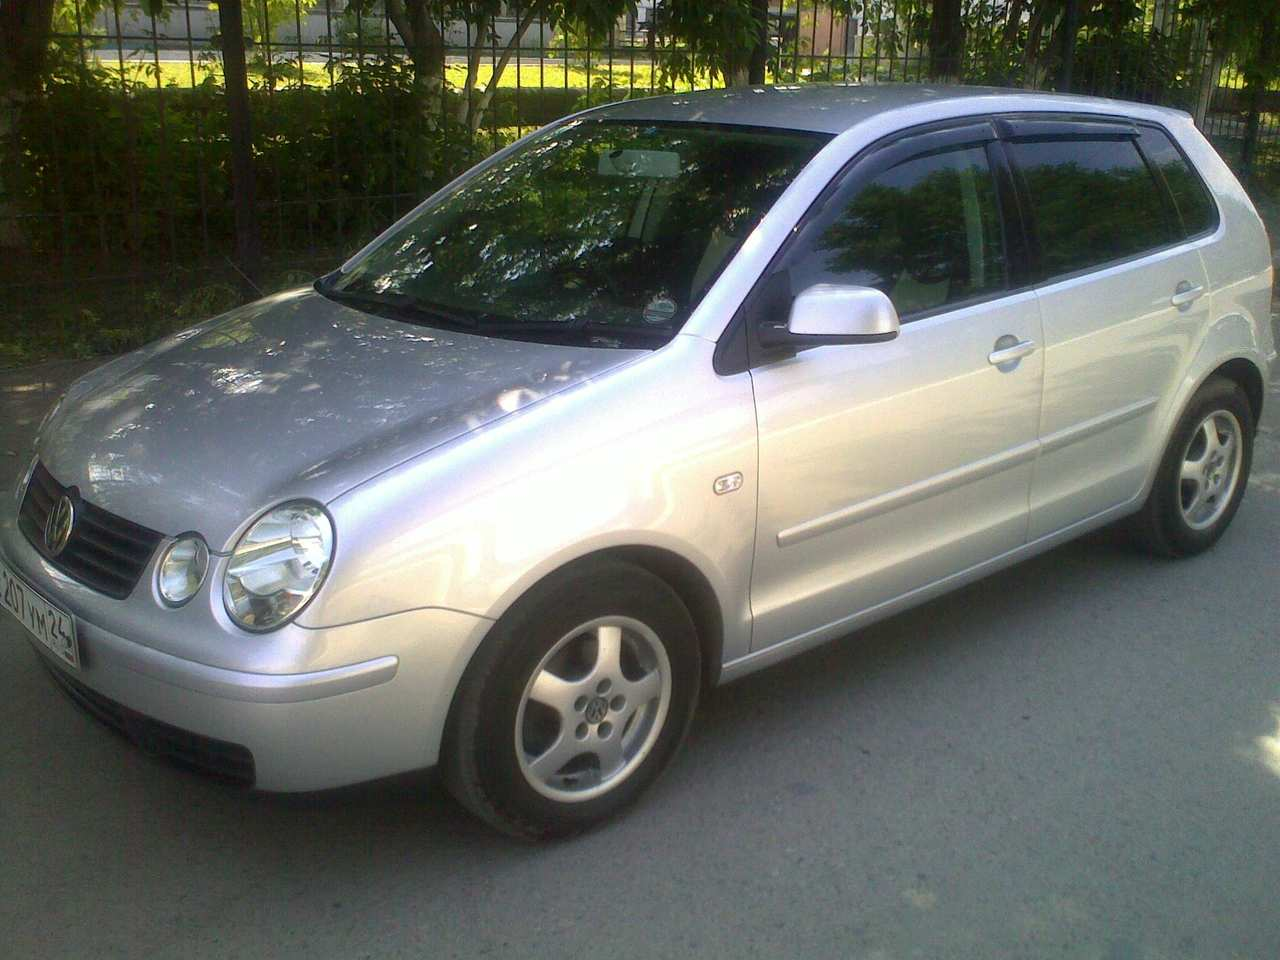 2001 volkswagen polo photos 1 4 gasoline ff automatic for sale. Black Bedroom Furniture Sets. Home Design Ideas